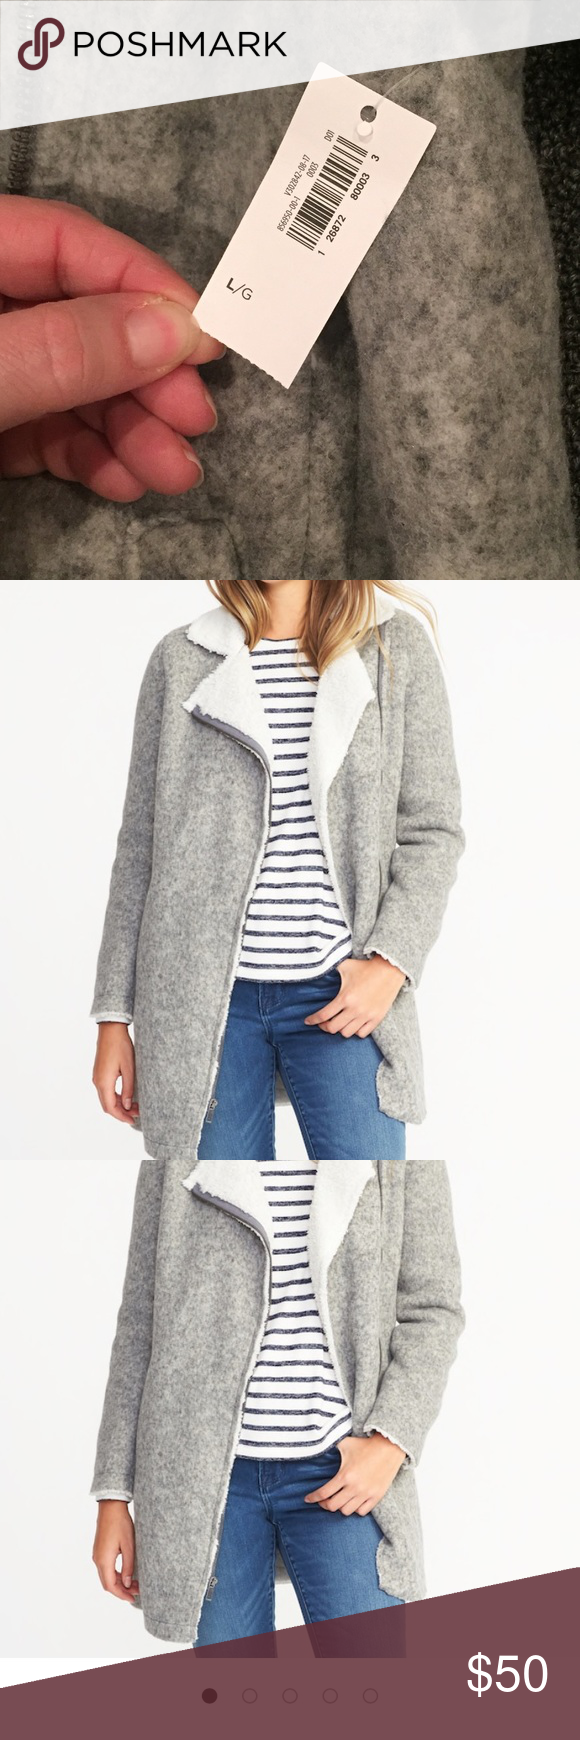 NWT Old Navy Sherpa Lined Moto Jacket Large NWT Clothes